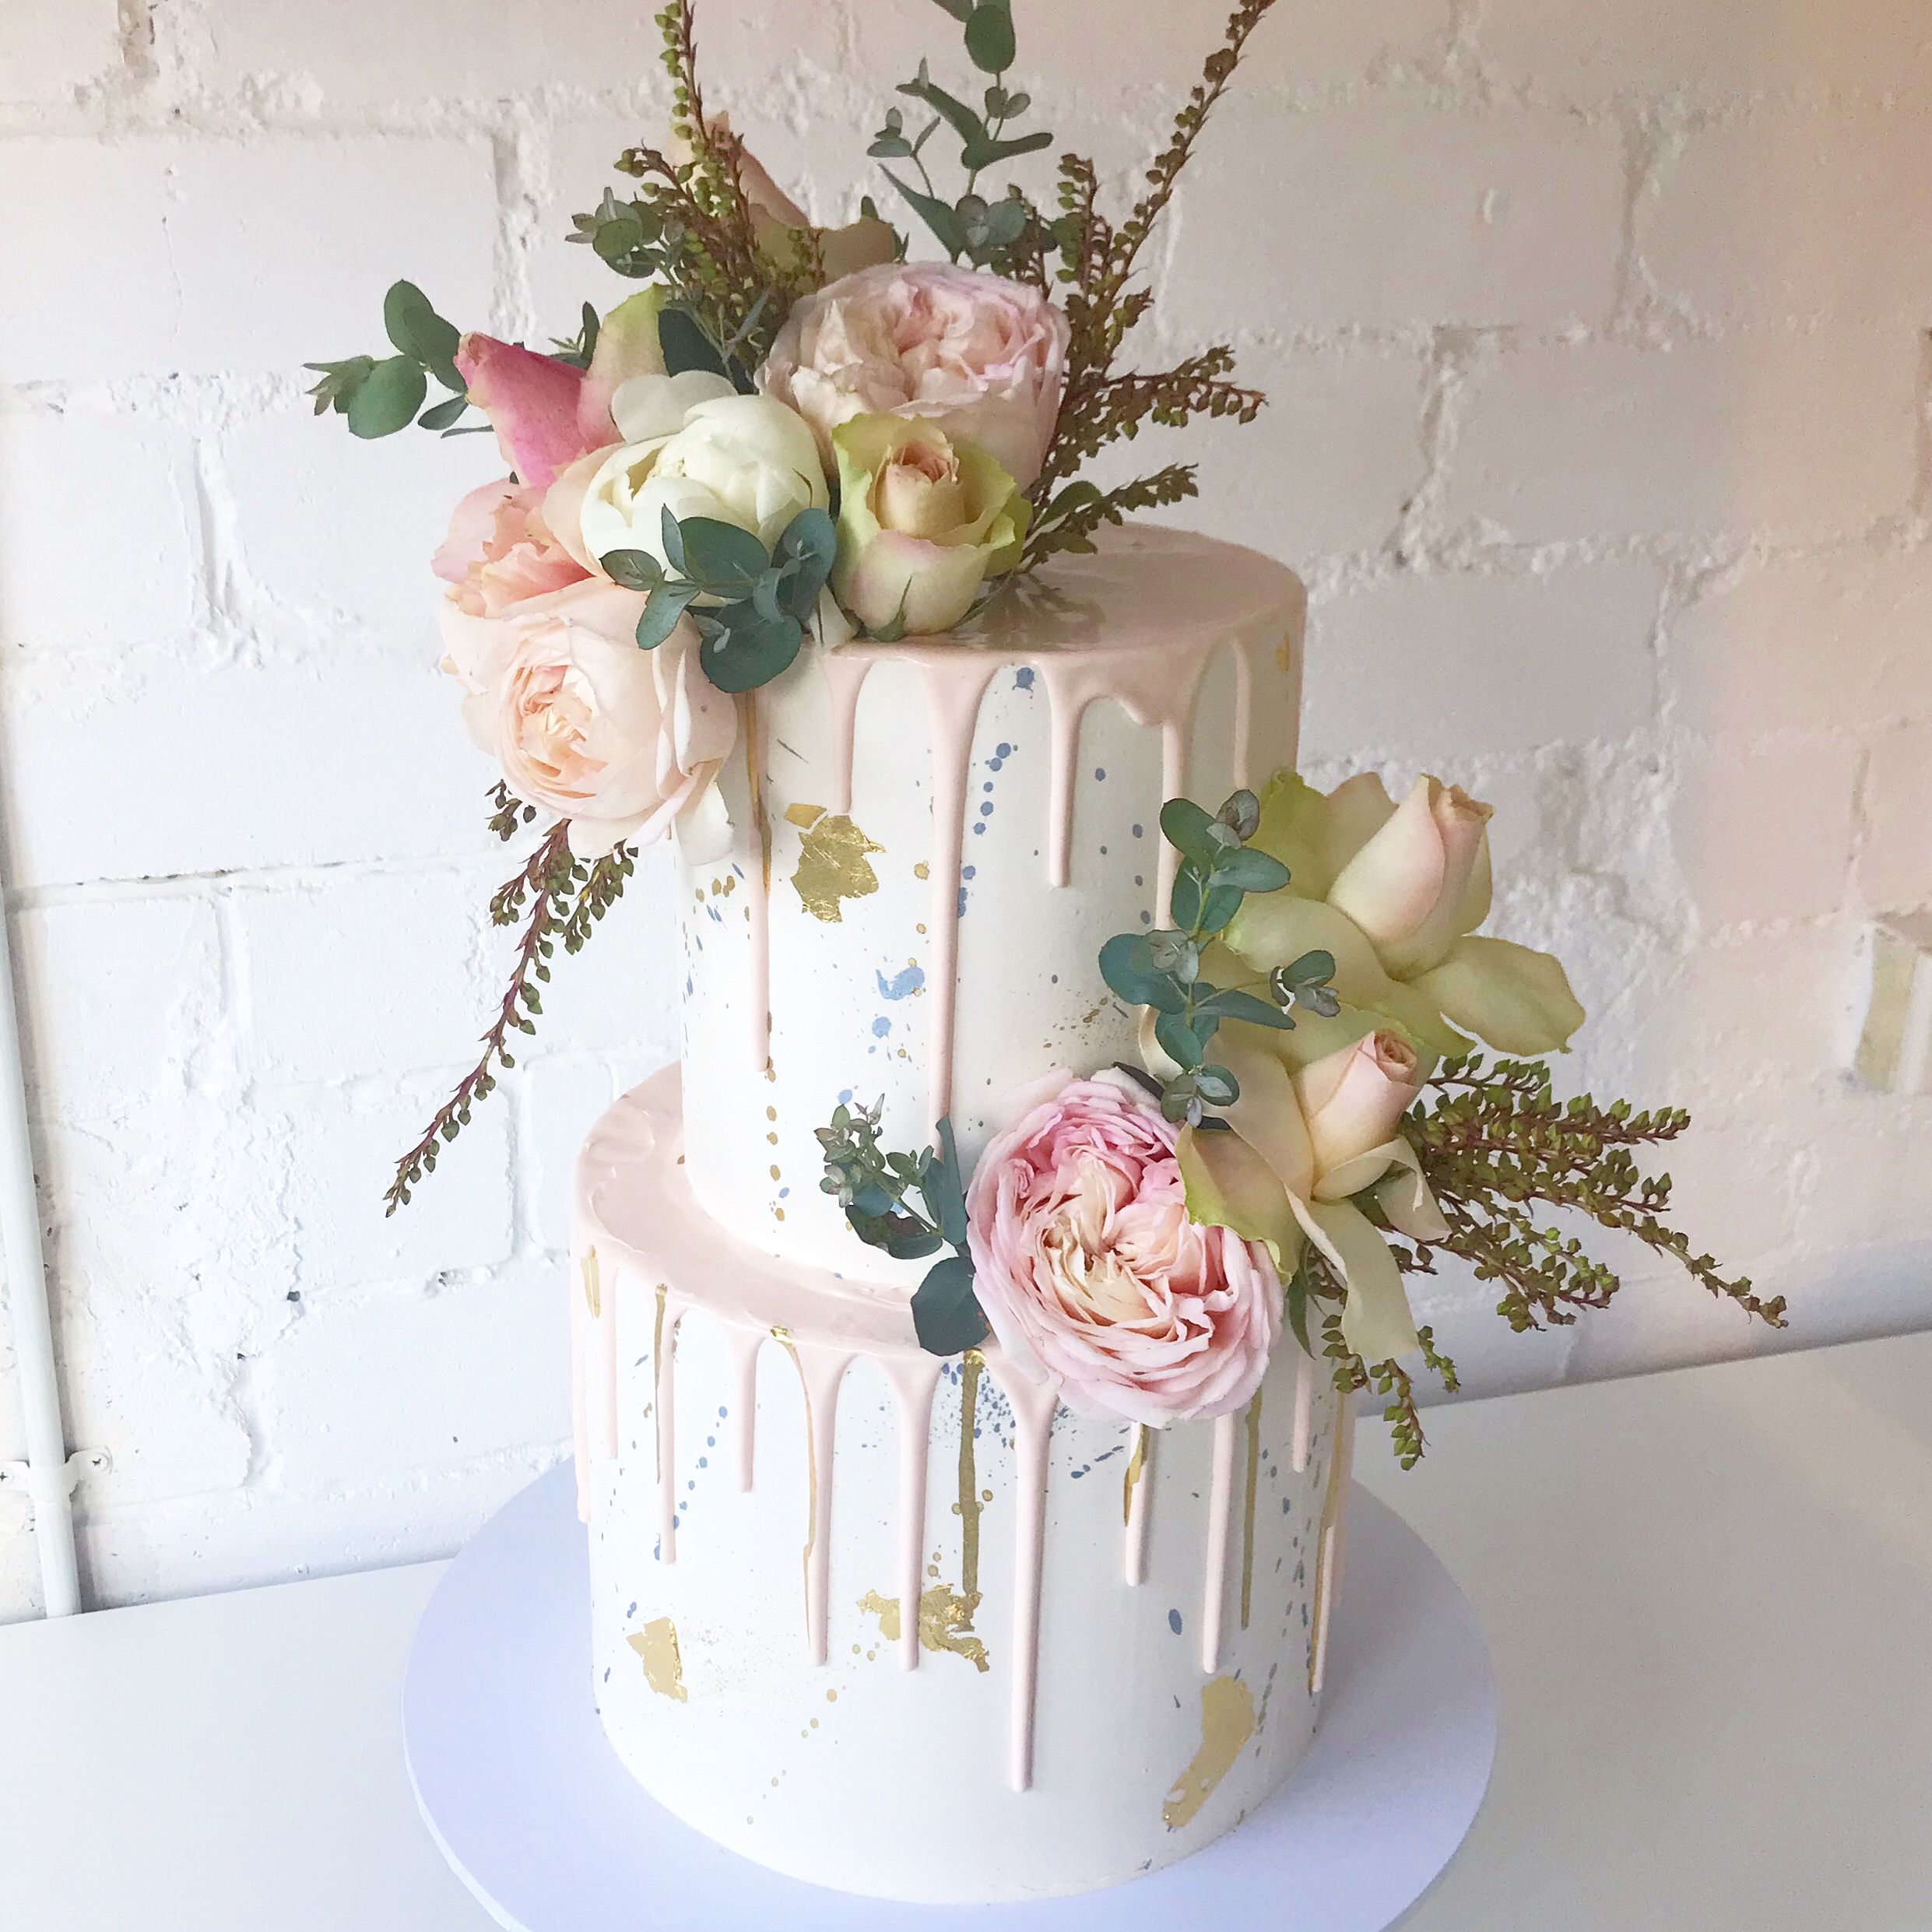 Two Tier Cakes - Three sizes to choose fromFeeds between 30 and 80 depending on sizeStarts at $300Budget for about $450